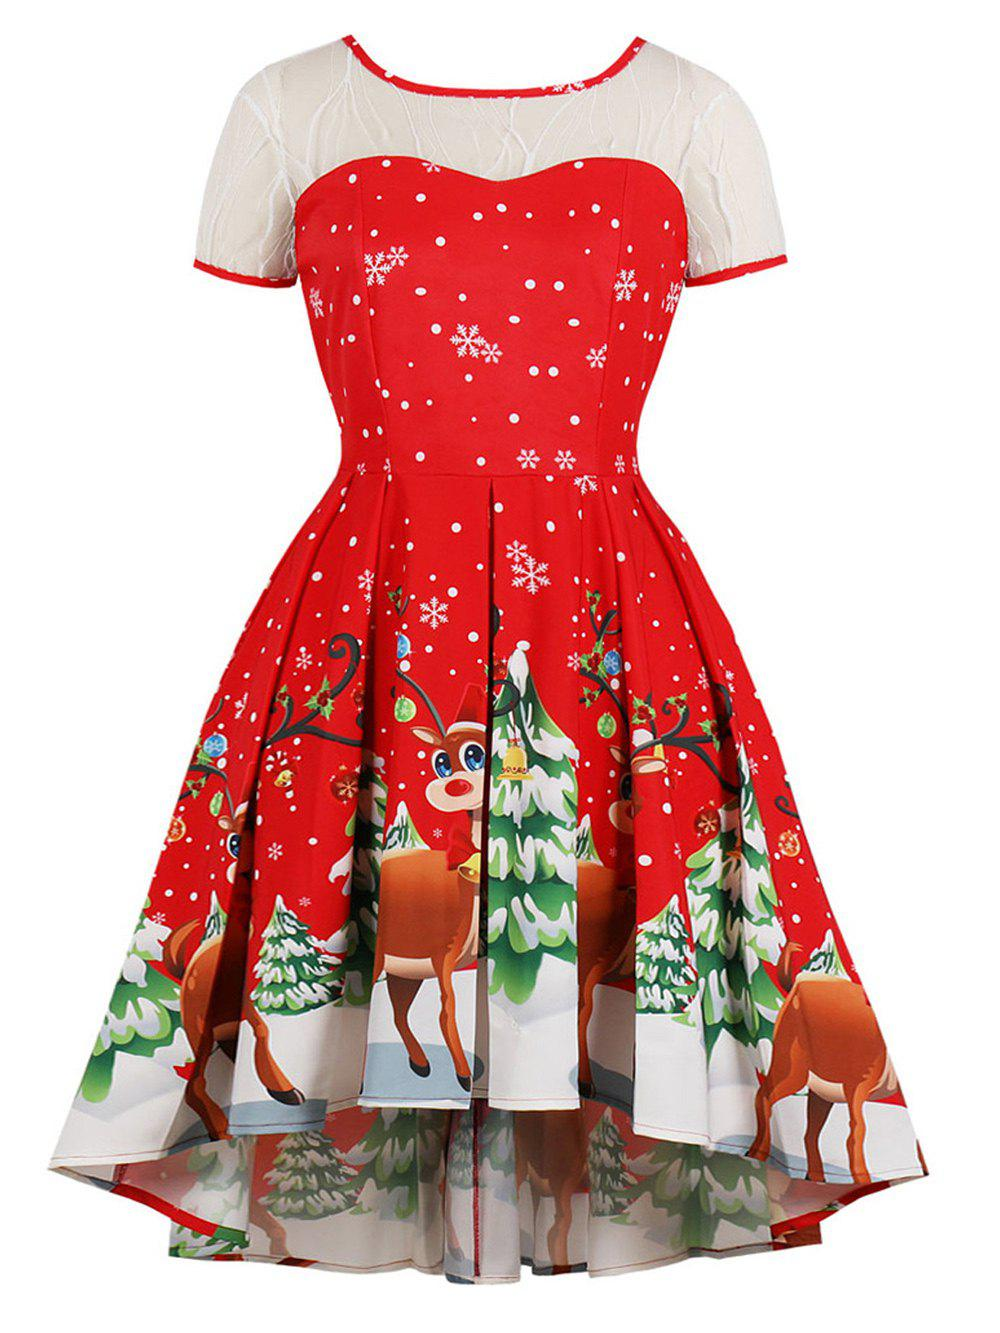 Chic Hepburn Vintage Series Women Dress Spring And Summer Round Neck Christmas Printing Lace-stitching Design Short Sleeve Corset Dress